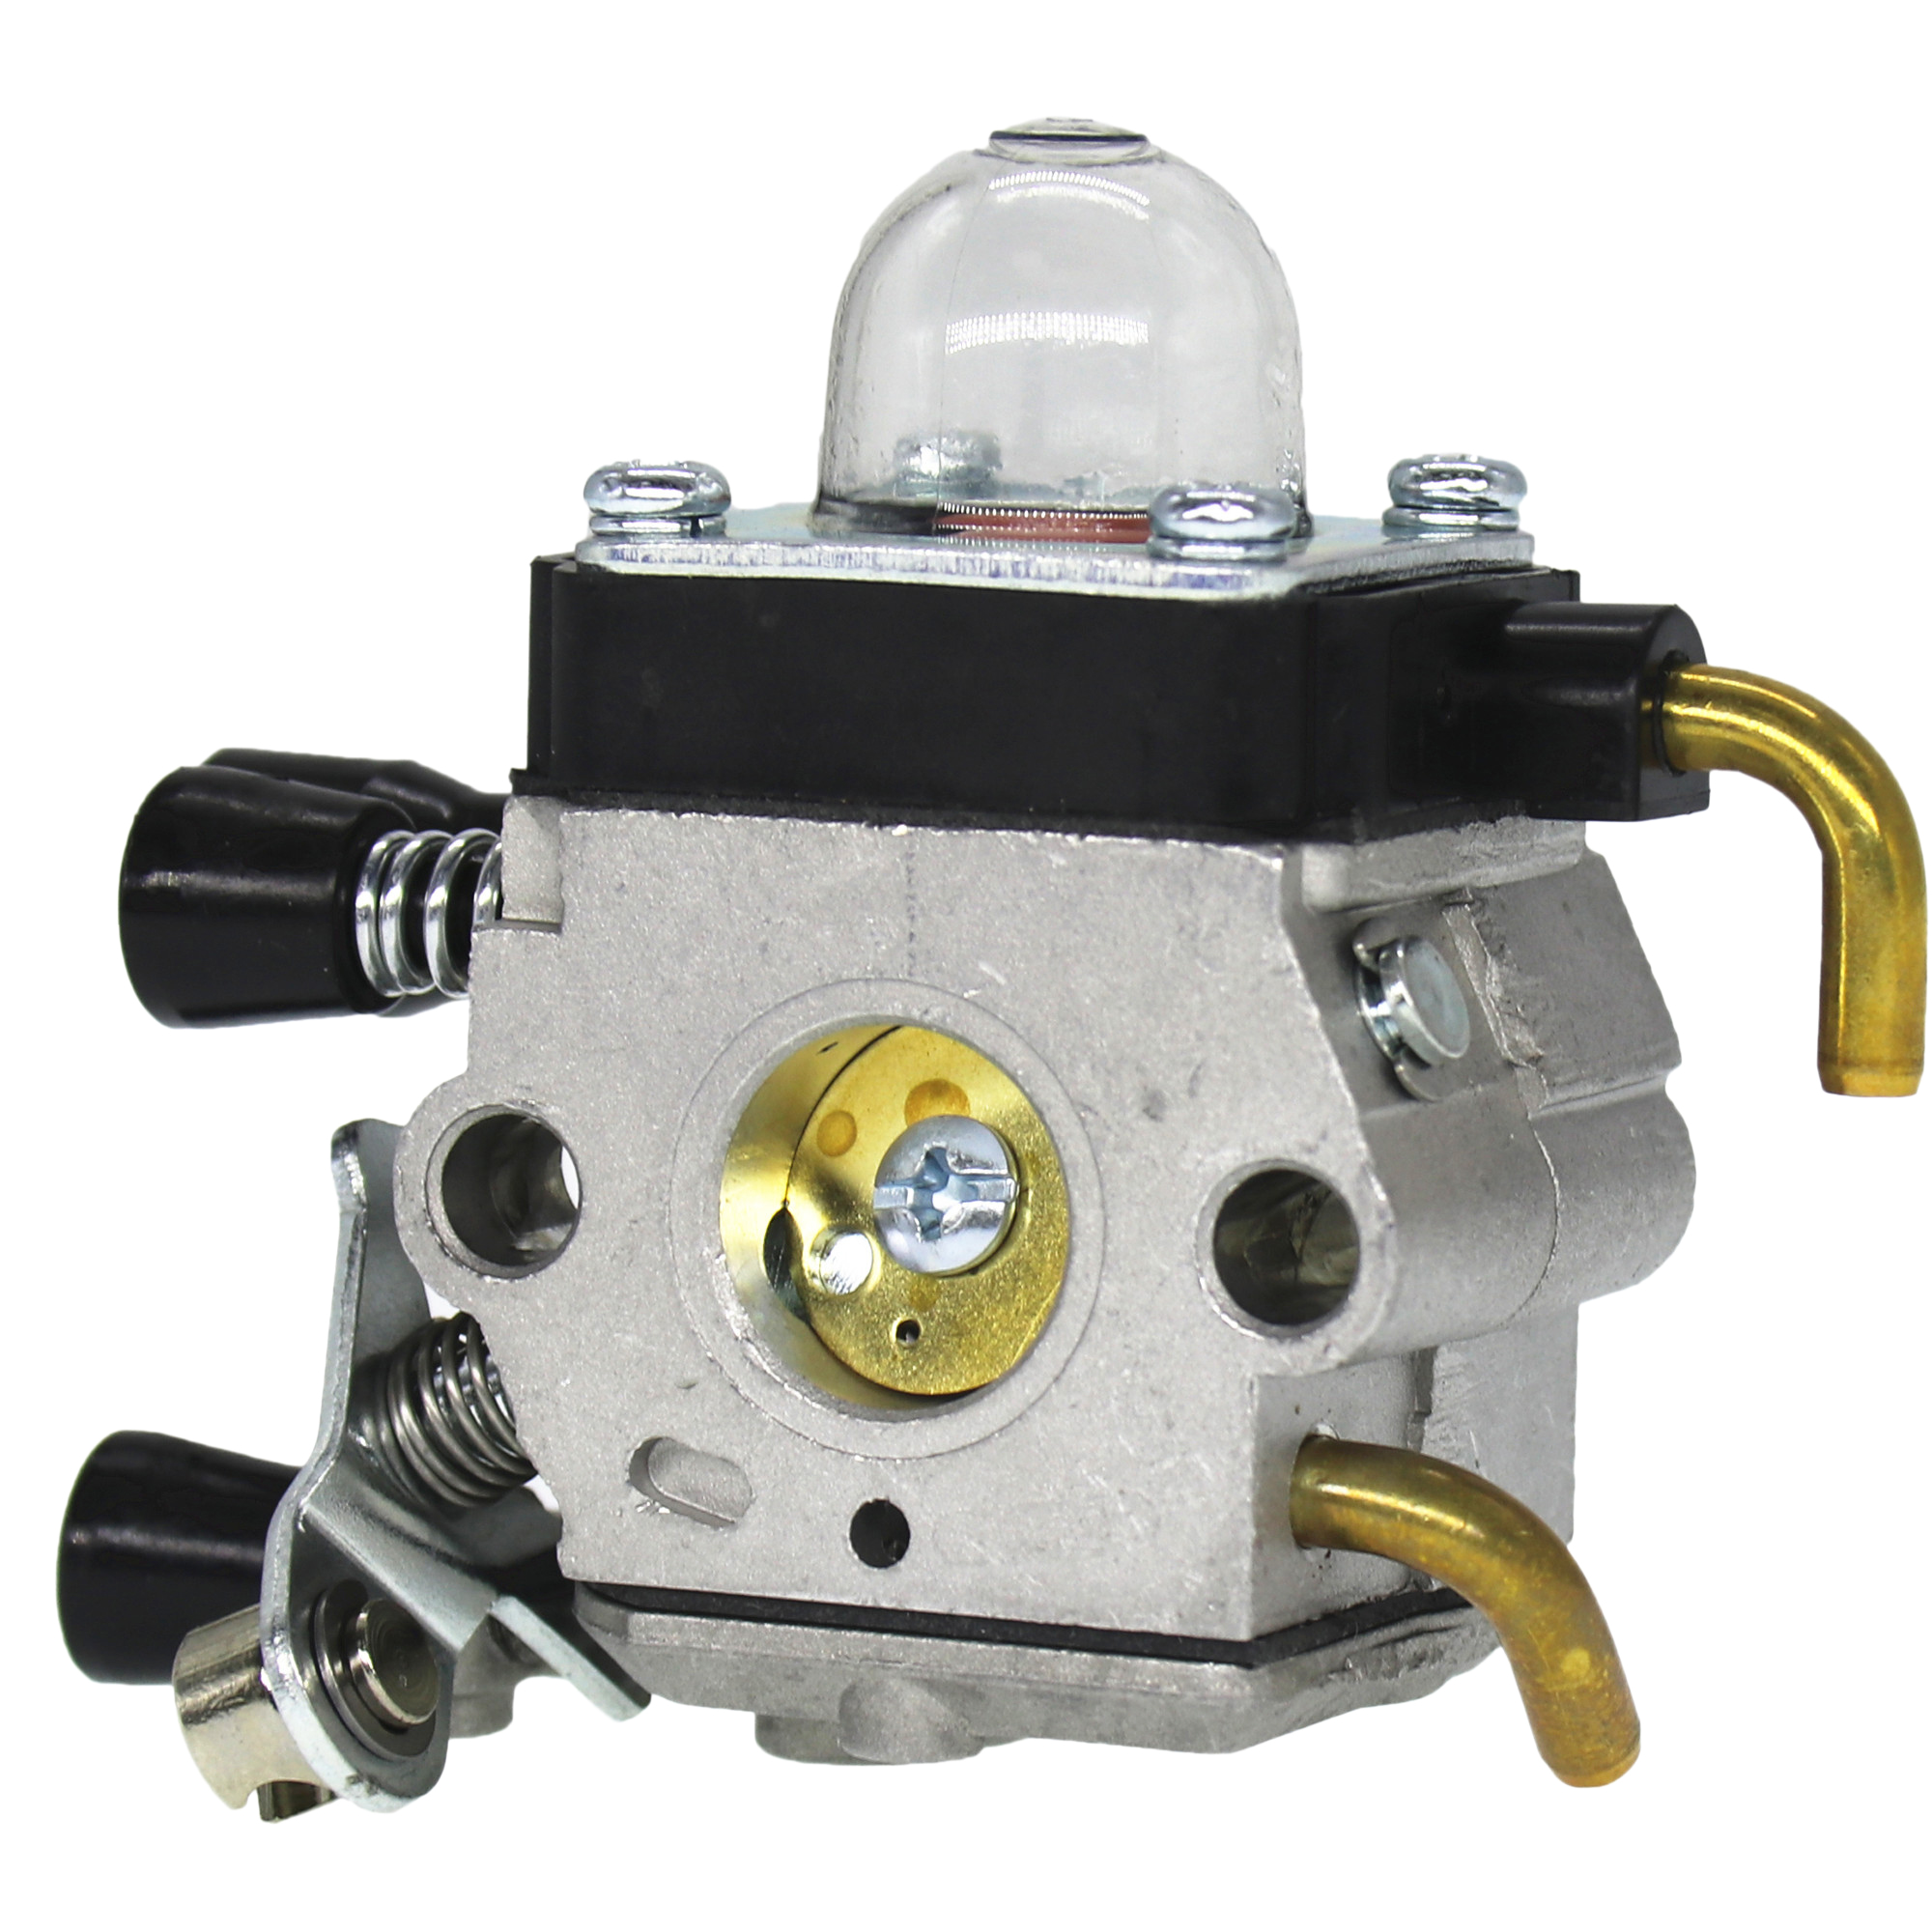 <font><b>Carburetor</b></font> Carb <font><b>for</b></font> <font><b>STIHL</b></font> <font><b>FS38</b></font> <font><b>FS45</b></font> FS46 FS55 Fs74 FS75 FS76 FS80 FS85 Chainsaw image